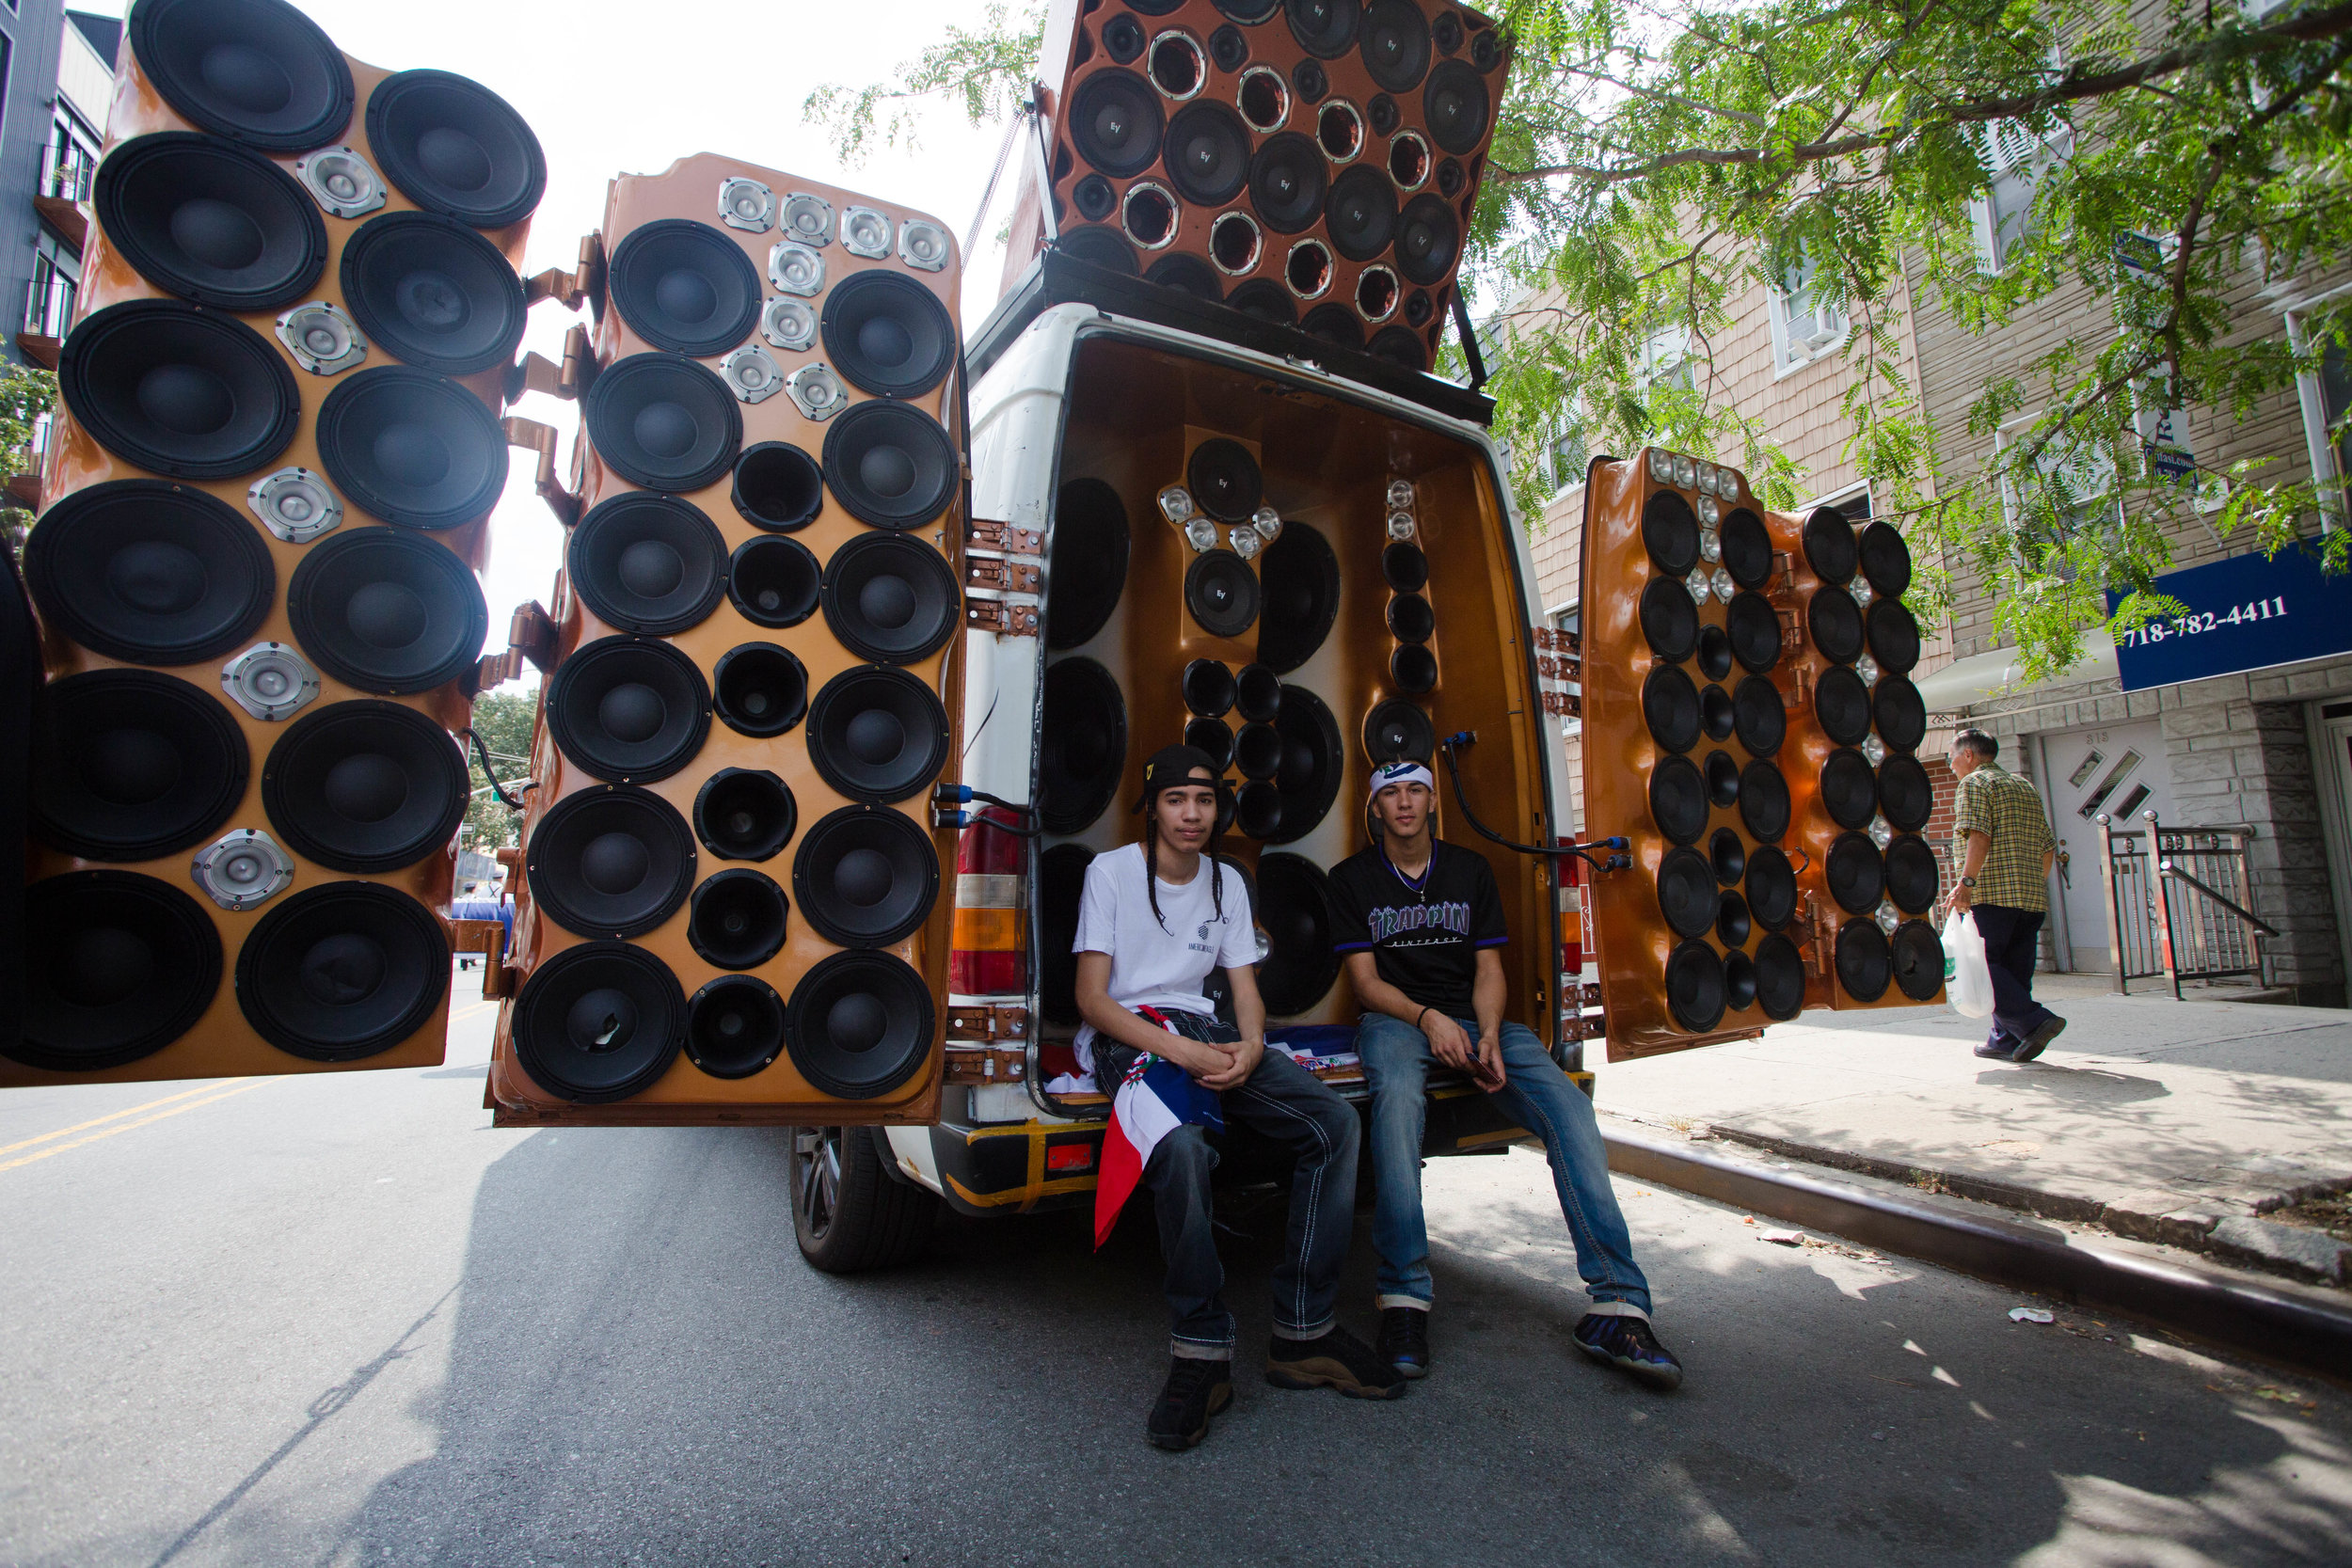 Hanser De la Rosa (left) and Bran Brahea (right) sitting on the back of an incredibly pimped out speaker system at the 18th annual Williamsburg Dominican Parade, on Sunday, Aug 26, in New York. Photo: Wes Parnell